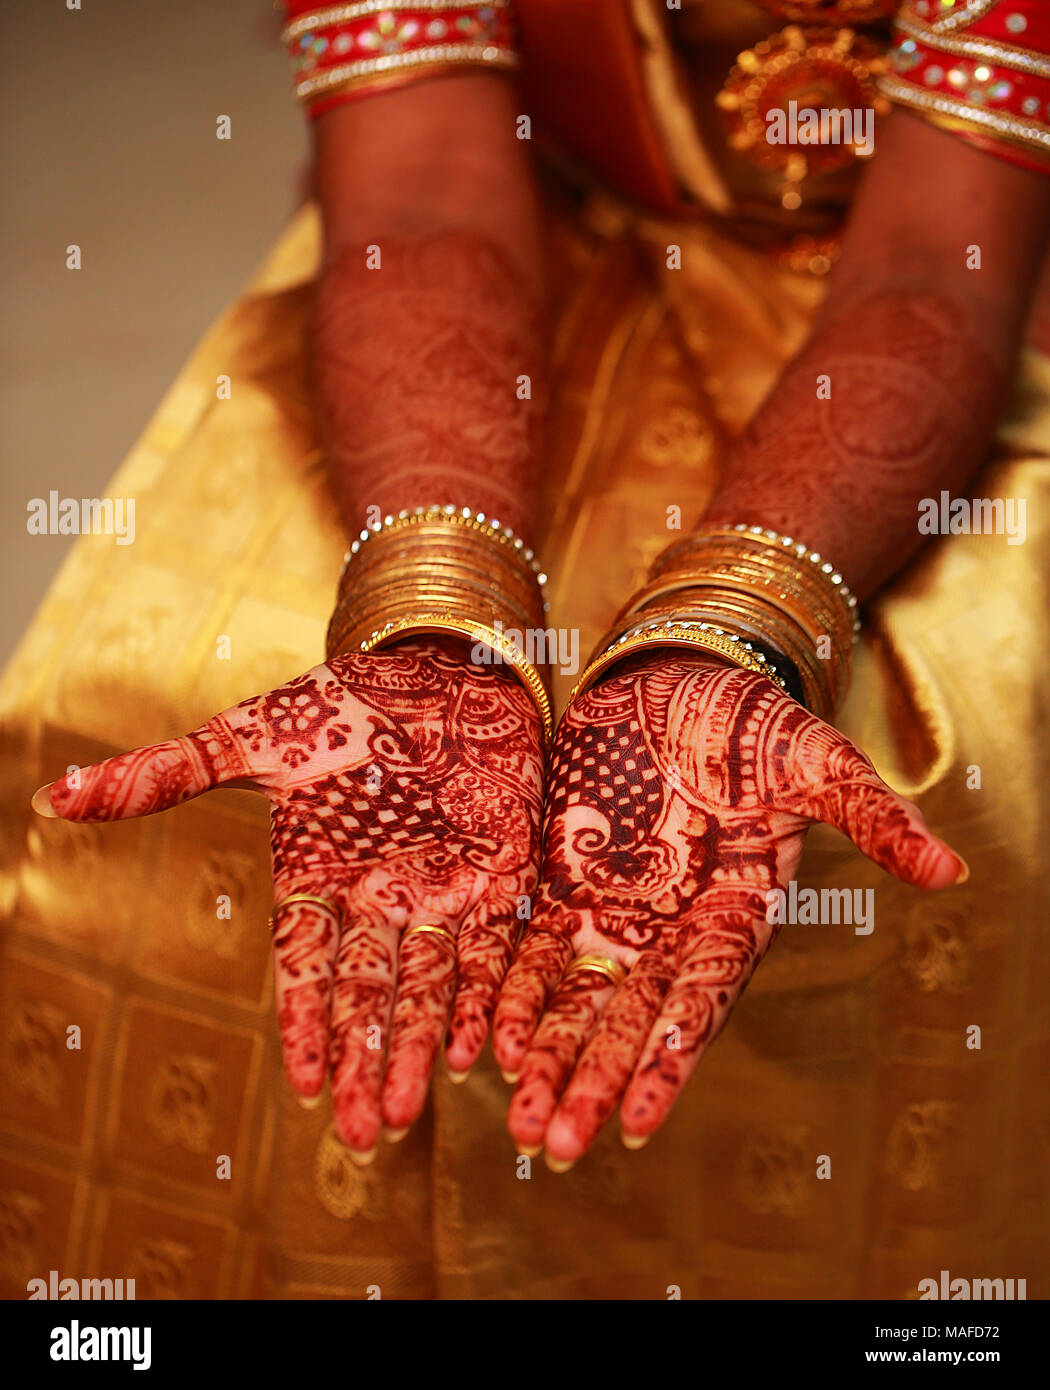 Hands Painted With Henna Close Up Indian Wedding Ceremony Stock